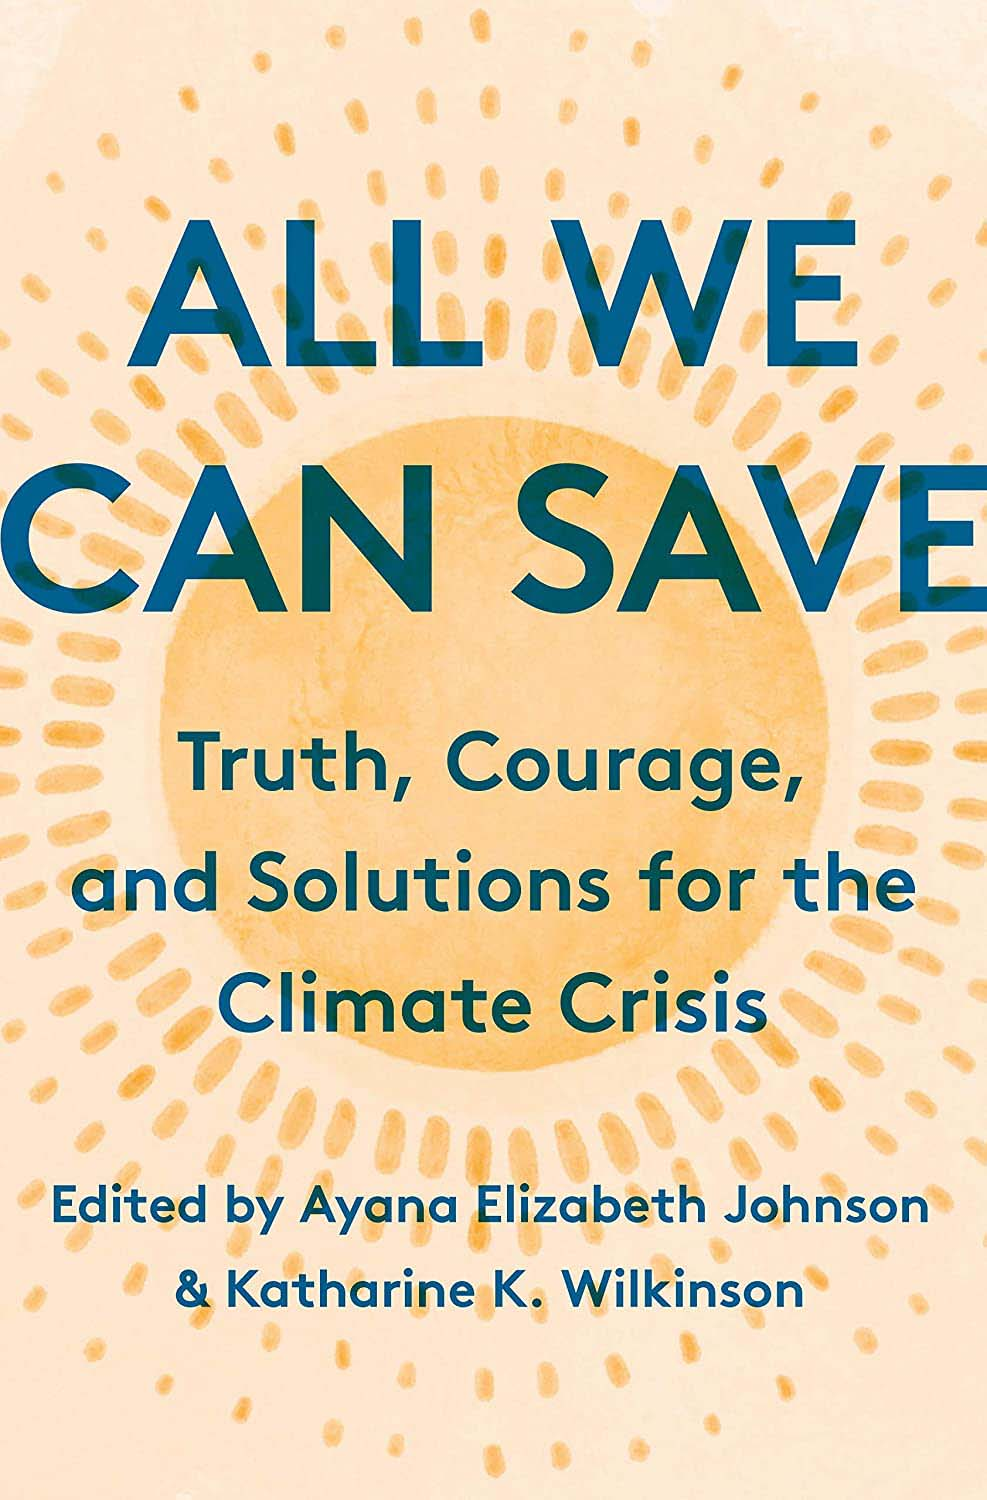 All We Can Save: Truth, Courage, and Solutions for the Climate Crises, edited by Ayana Elizabeth Johnson and Katharine K. Wilkinson.